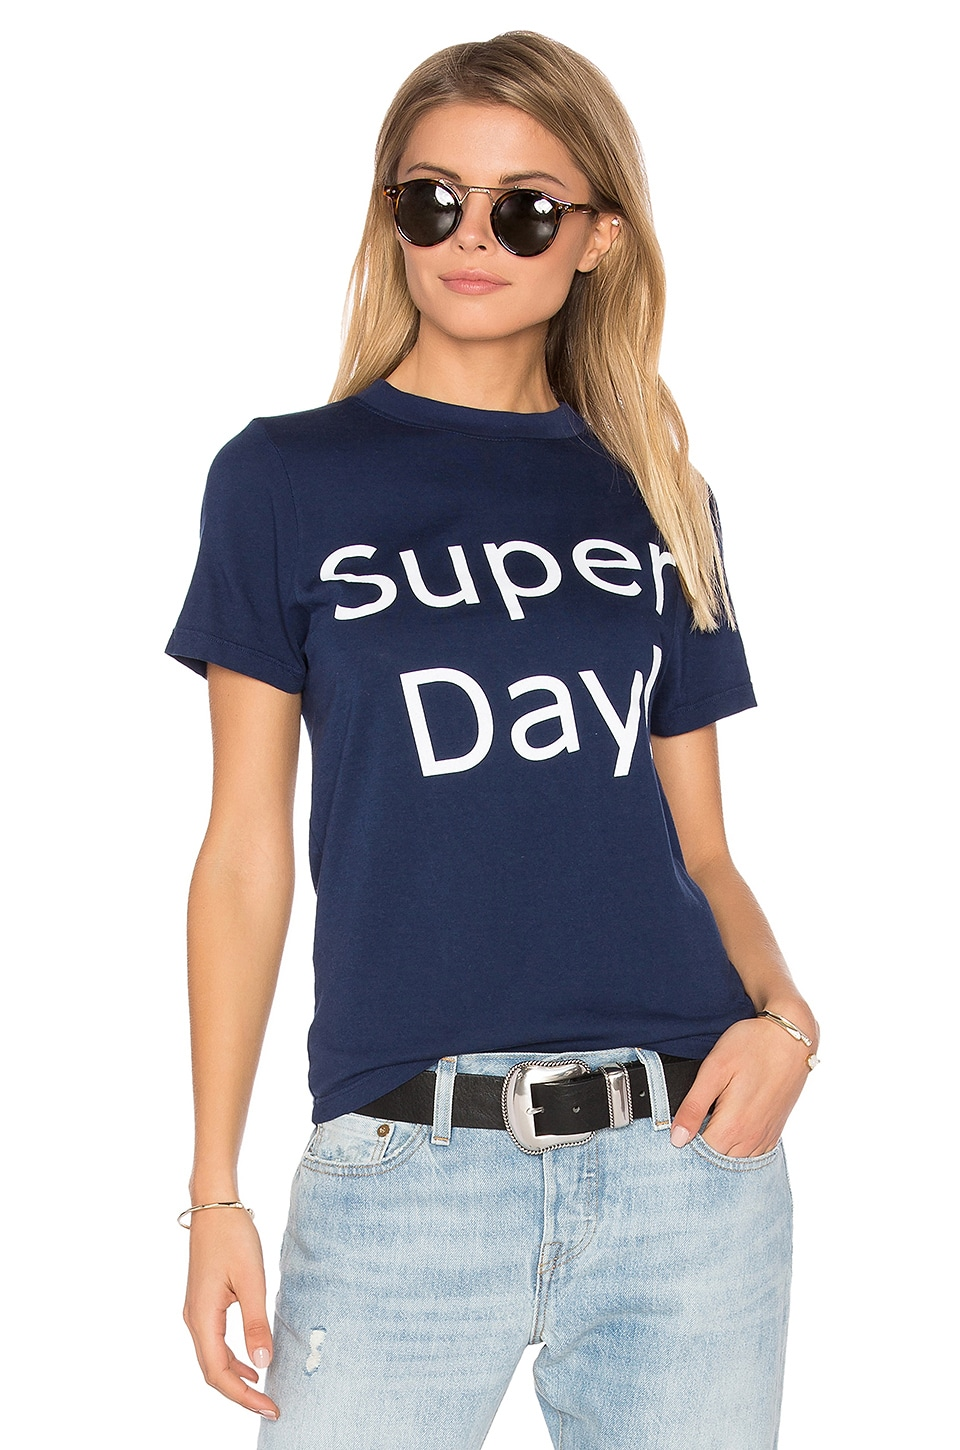 Daydream Nation Super Day Tee in LAPD